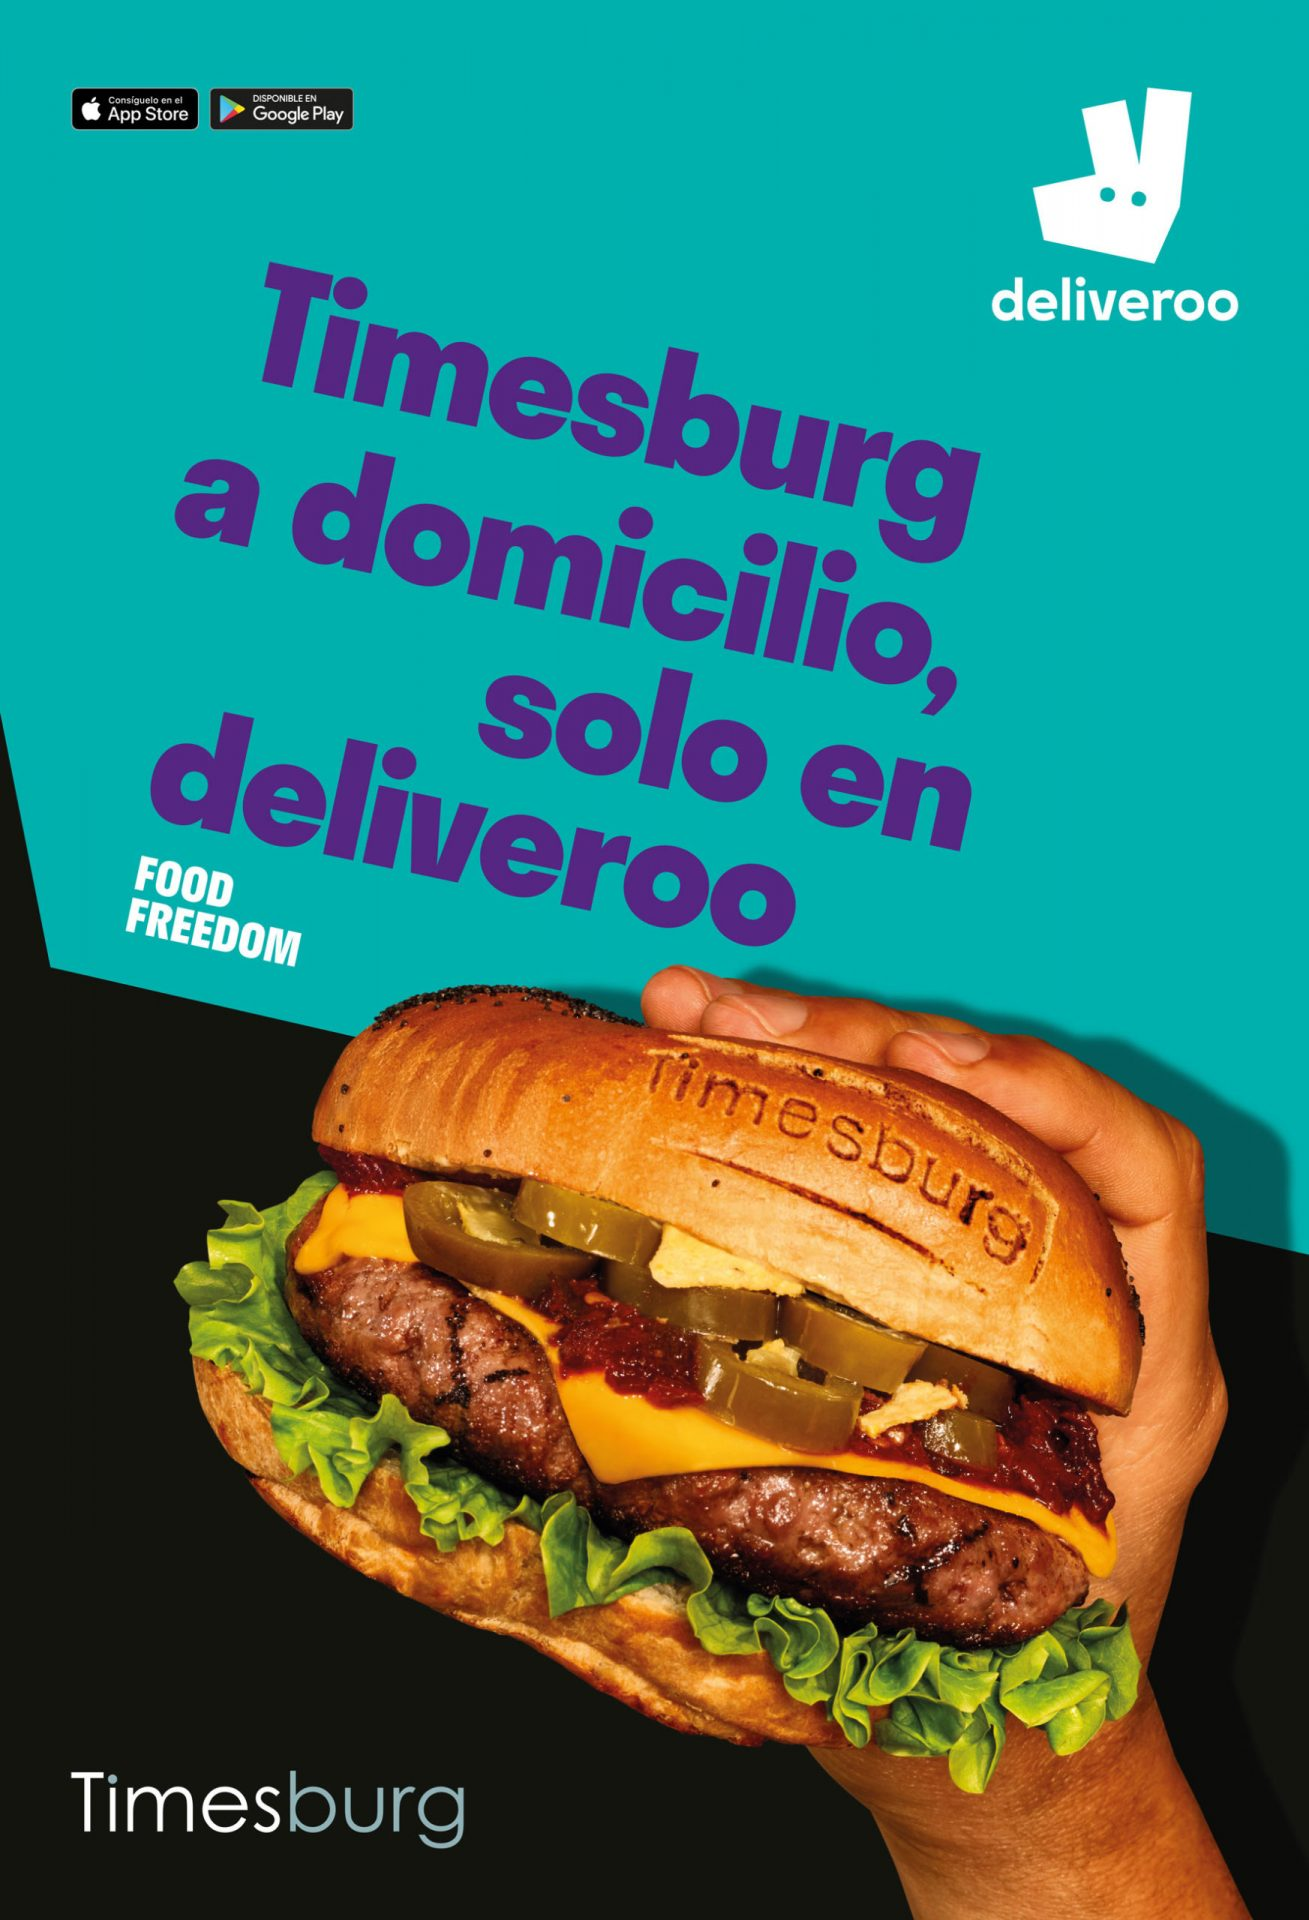 Approach_Deliveroo_Timesburg